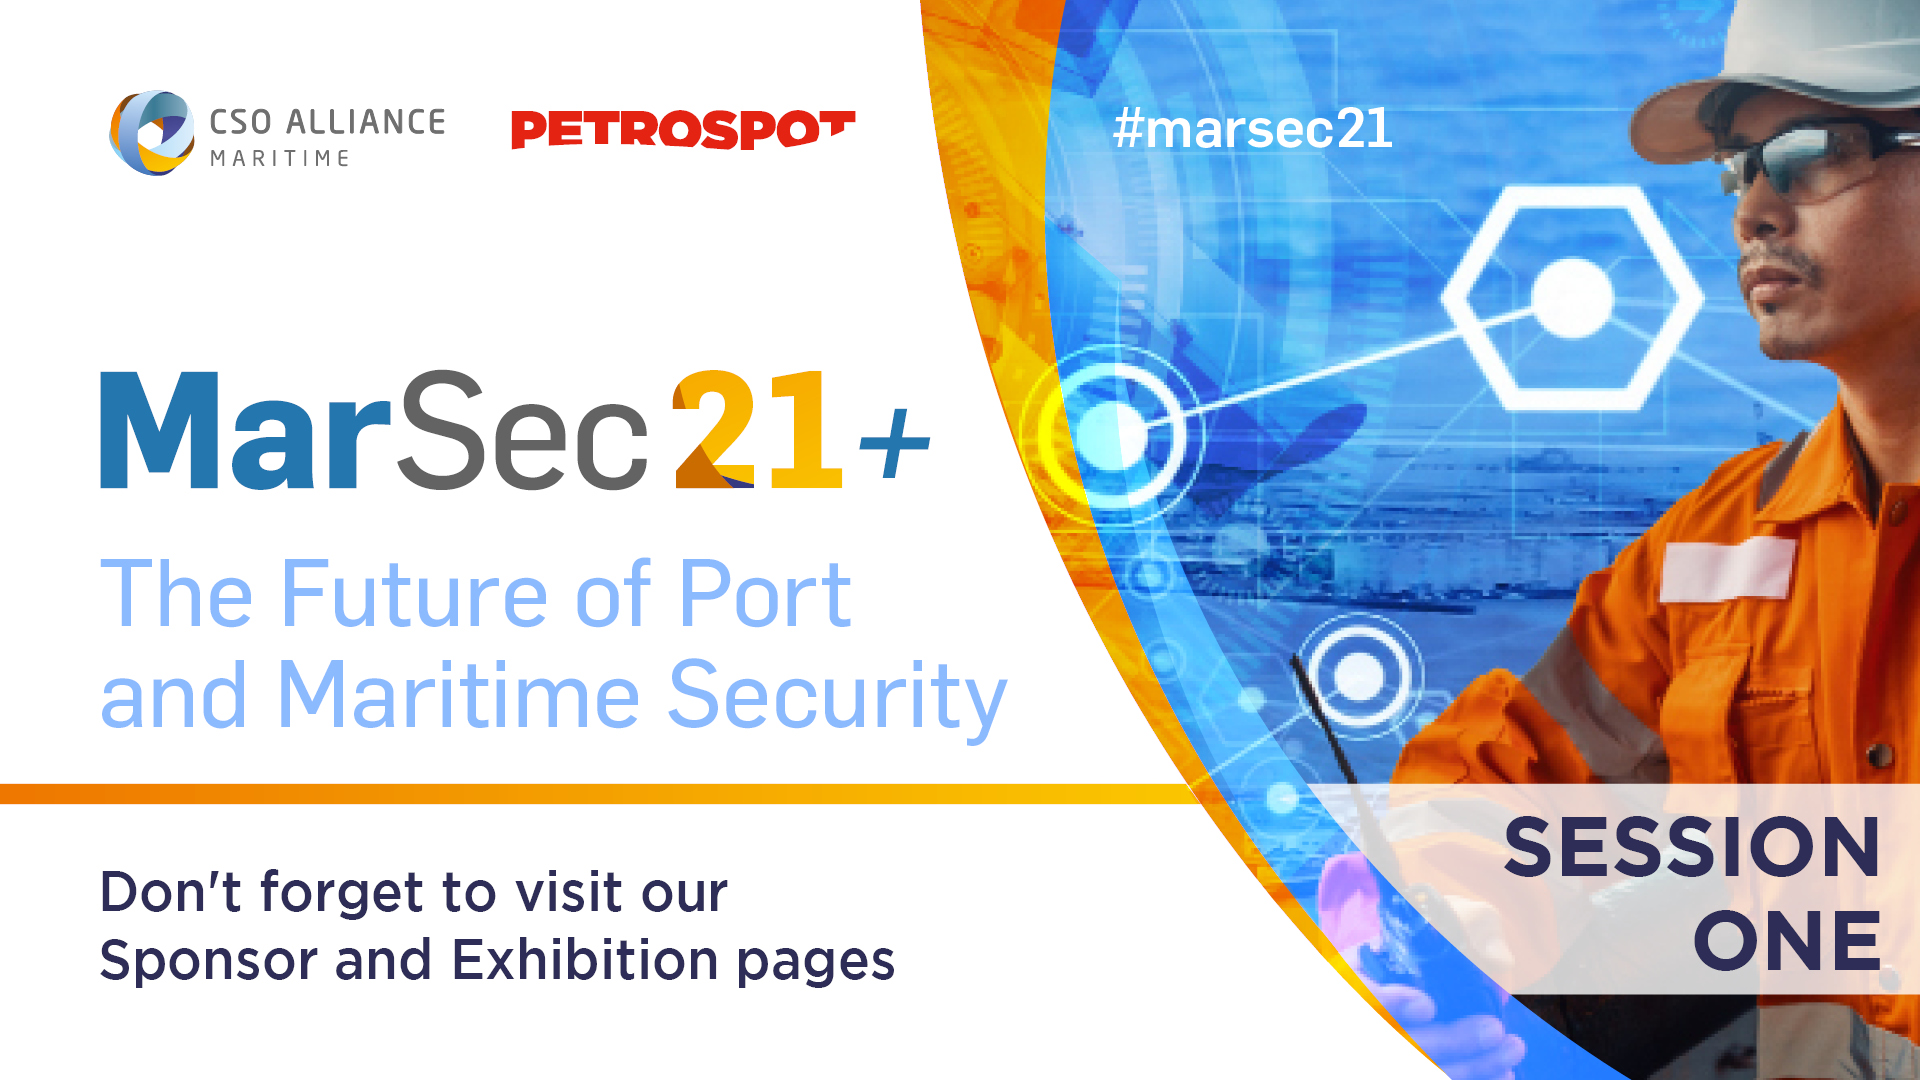 MarSec 21+ Session 1: Welcome from Mark Sutcliffe and Keynote Speech from Lord Nicholas Fairfax